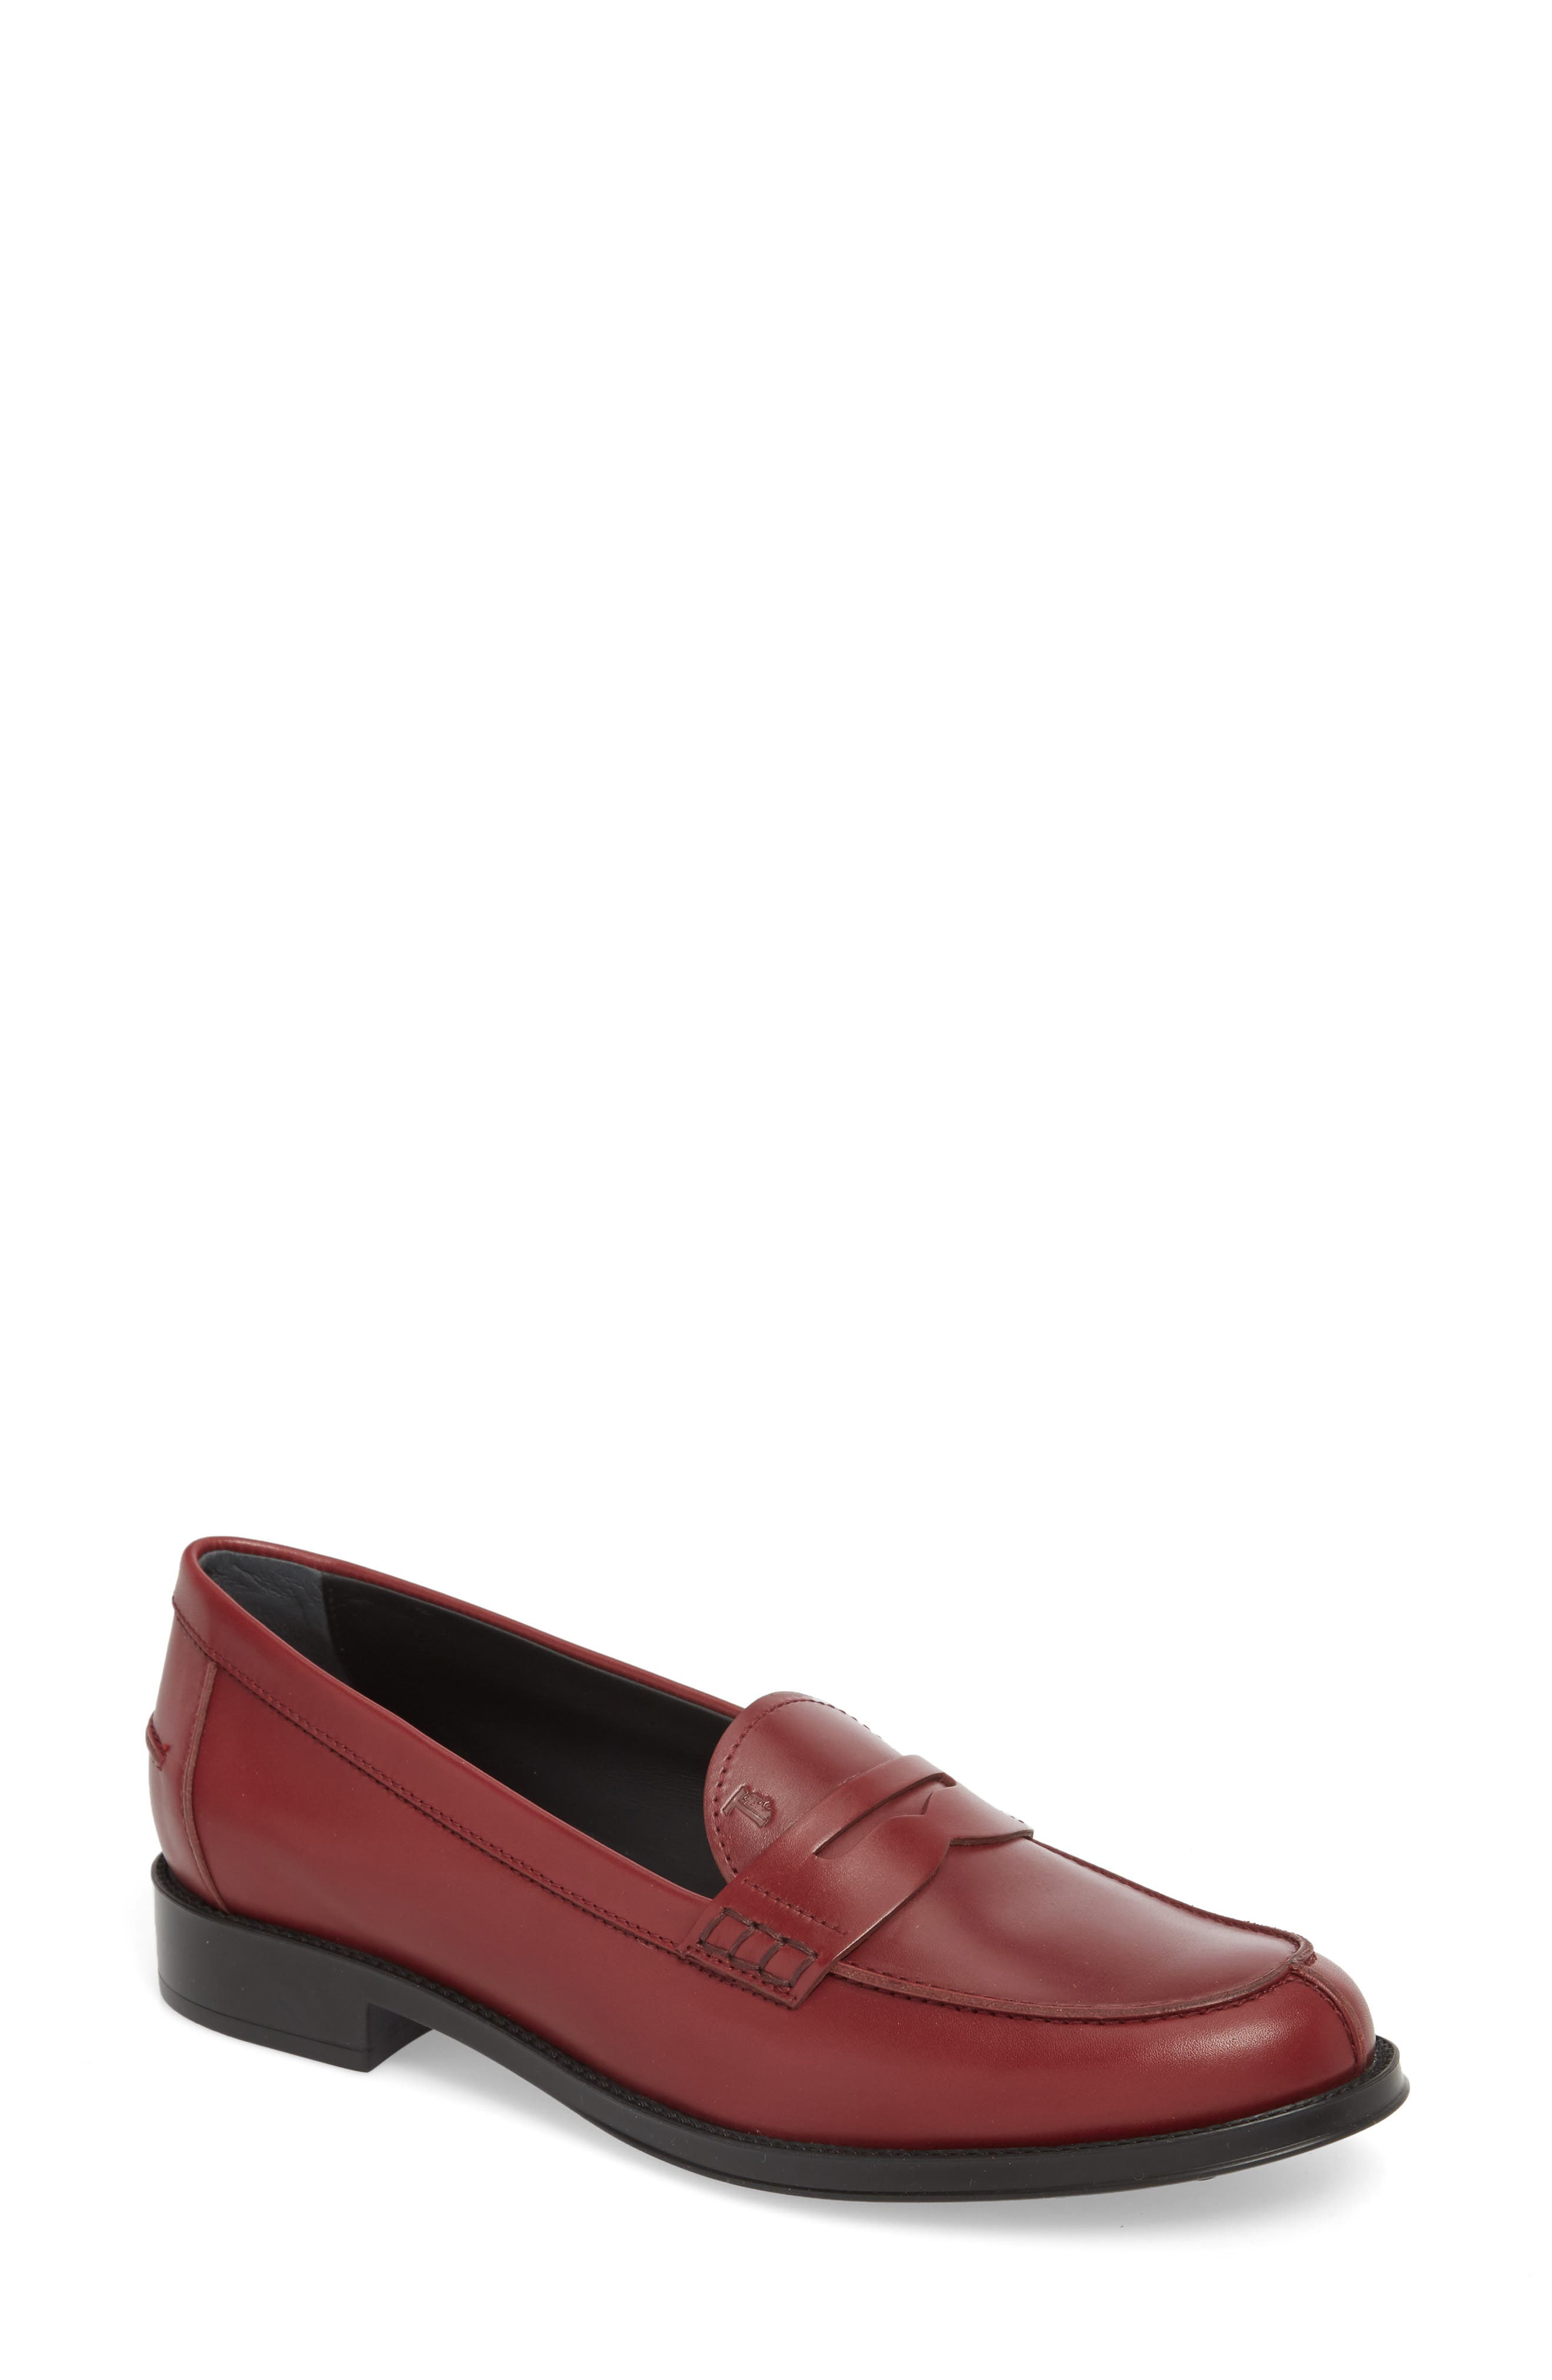 Penny Loafer,                             Main thumbnail 1, color,                             Burgundy